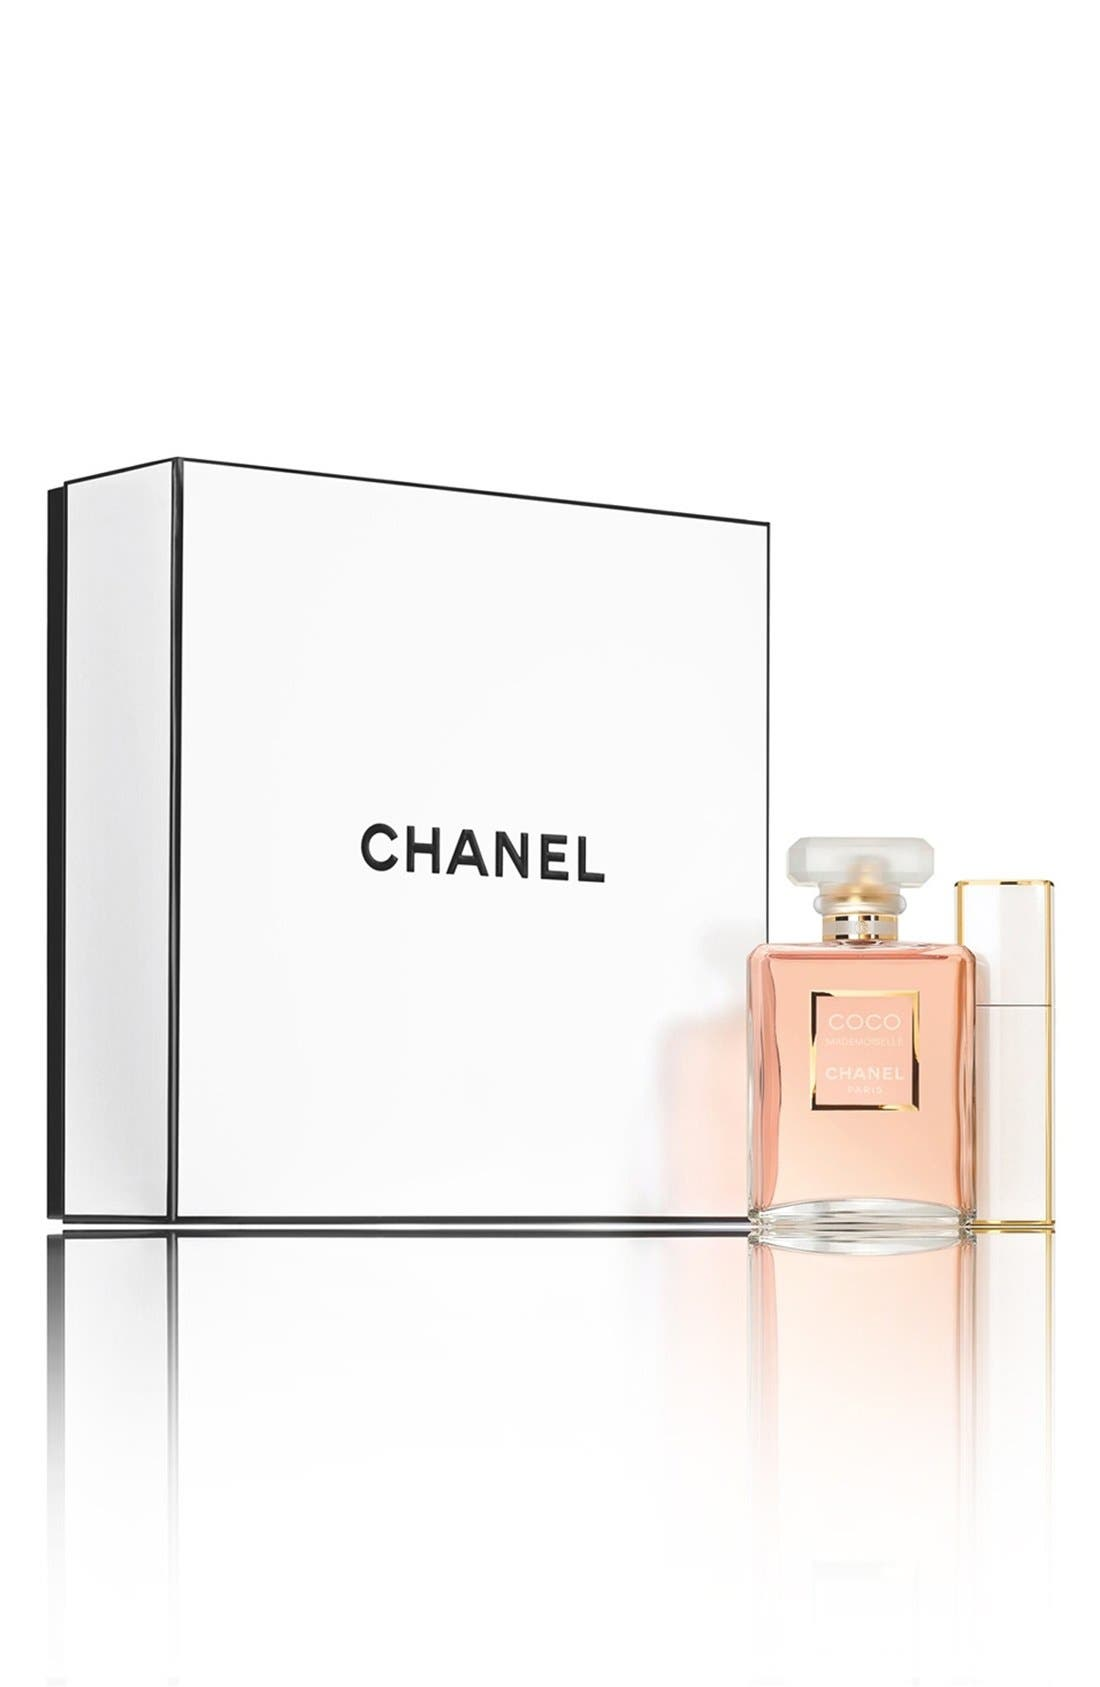 CHANEL,                             COCO MADEMOISELLE<br />Twist and Spray Travel Set,                             Main thumbnail 1, color,                             000